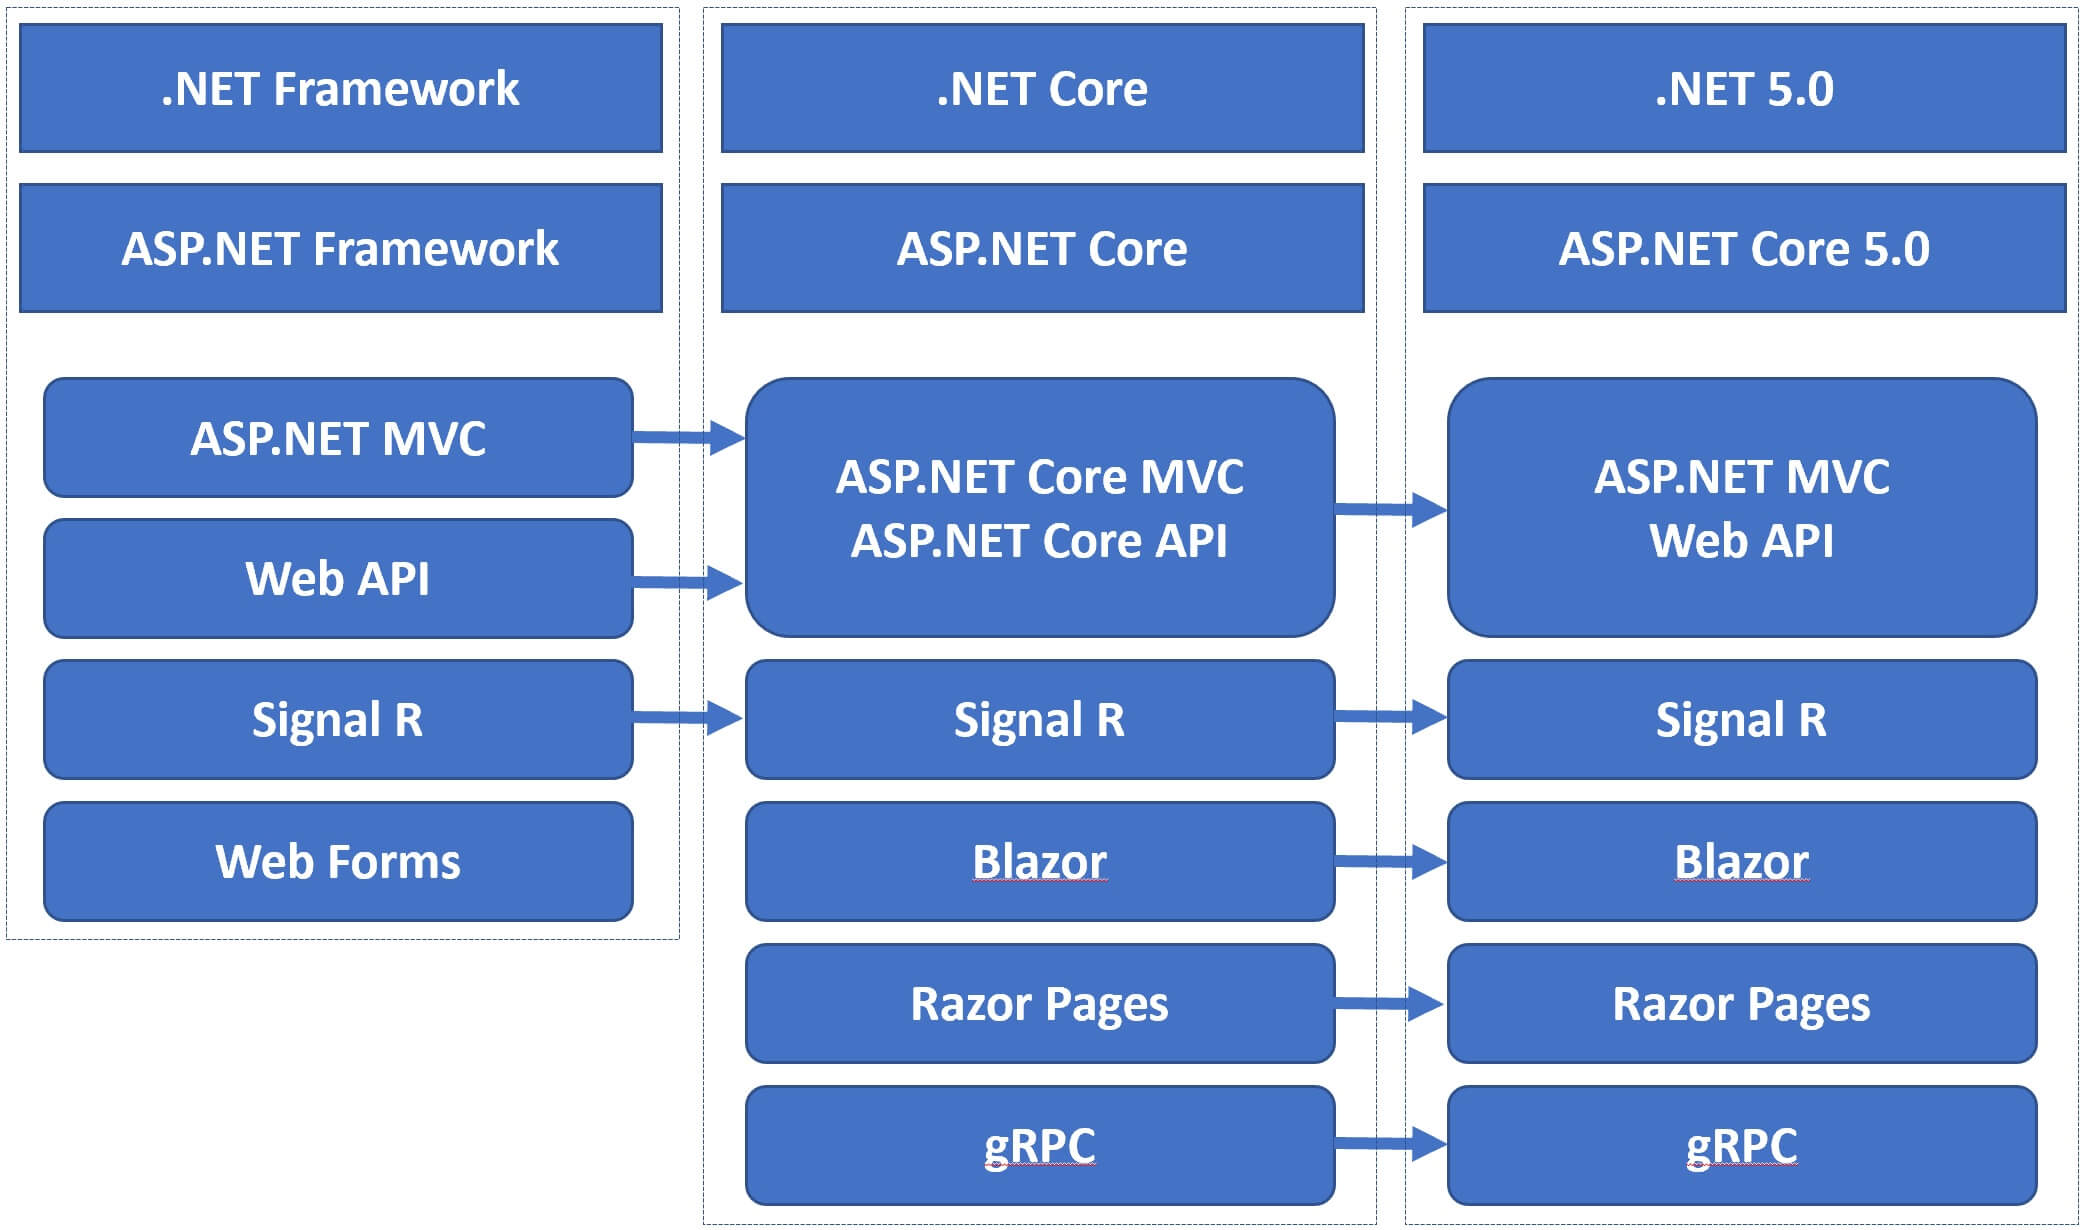 what is asp.net core 5